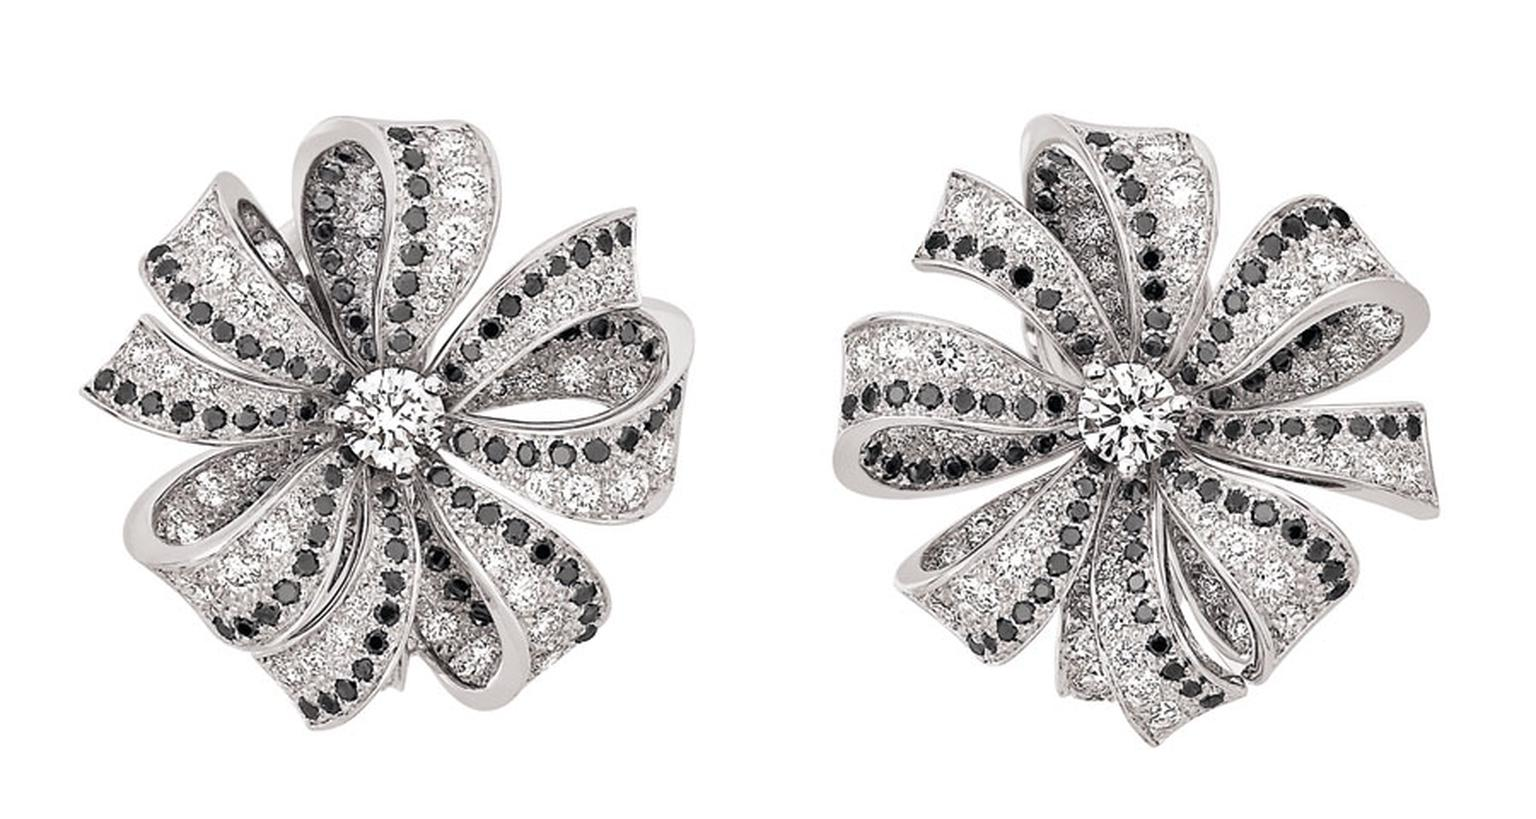 Chanel Boucles de Came´lia earrings in white gold, white diamonds and black diamonds